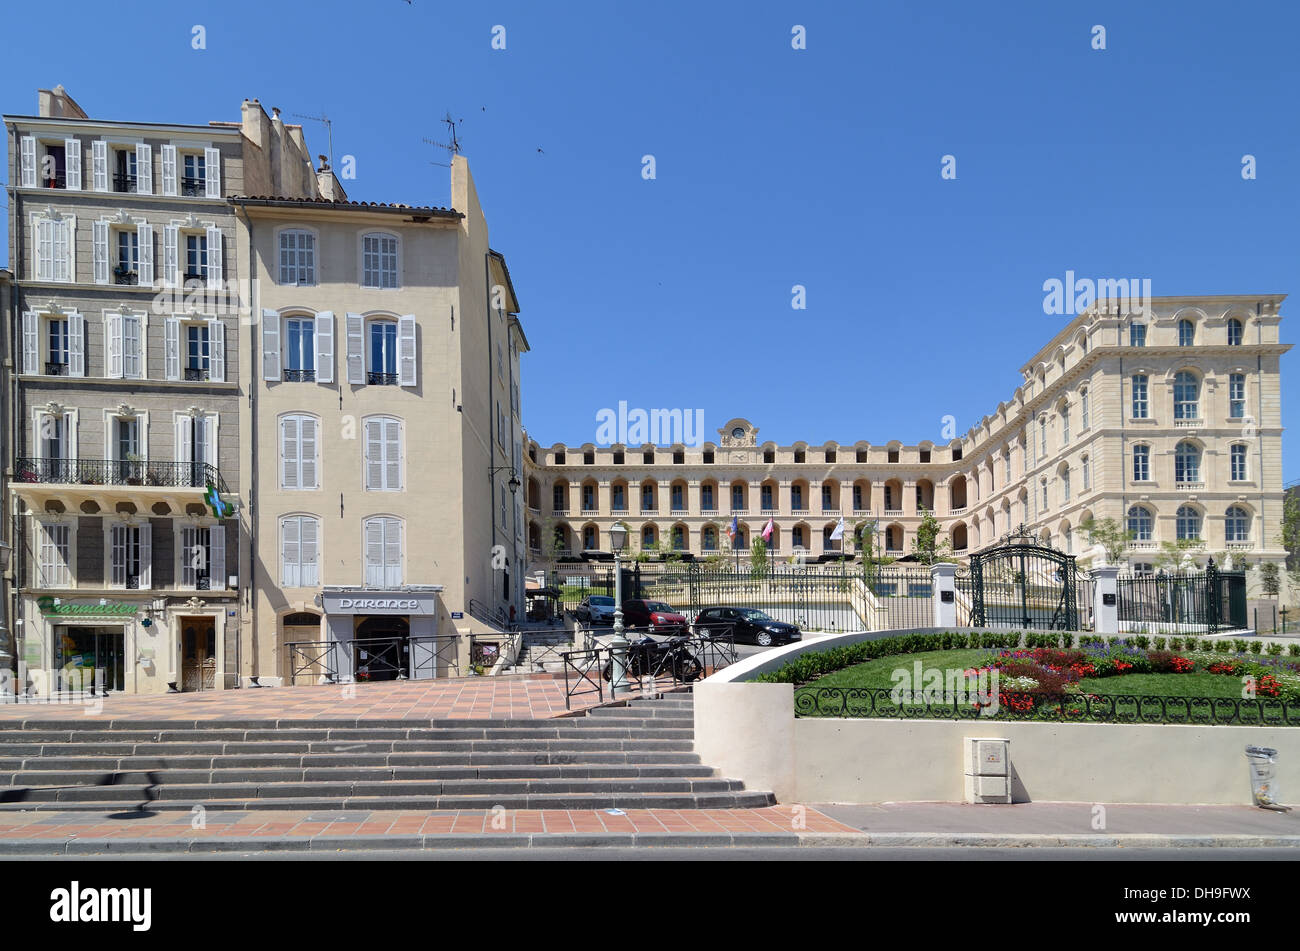 Hotel Dieu Intercontinental Panier Marseille France - Stock Image